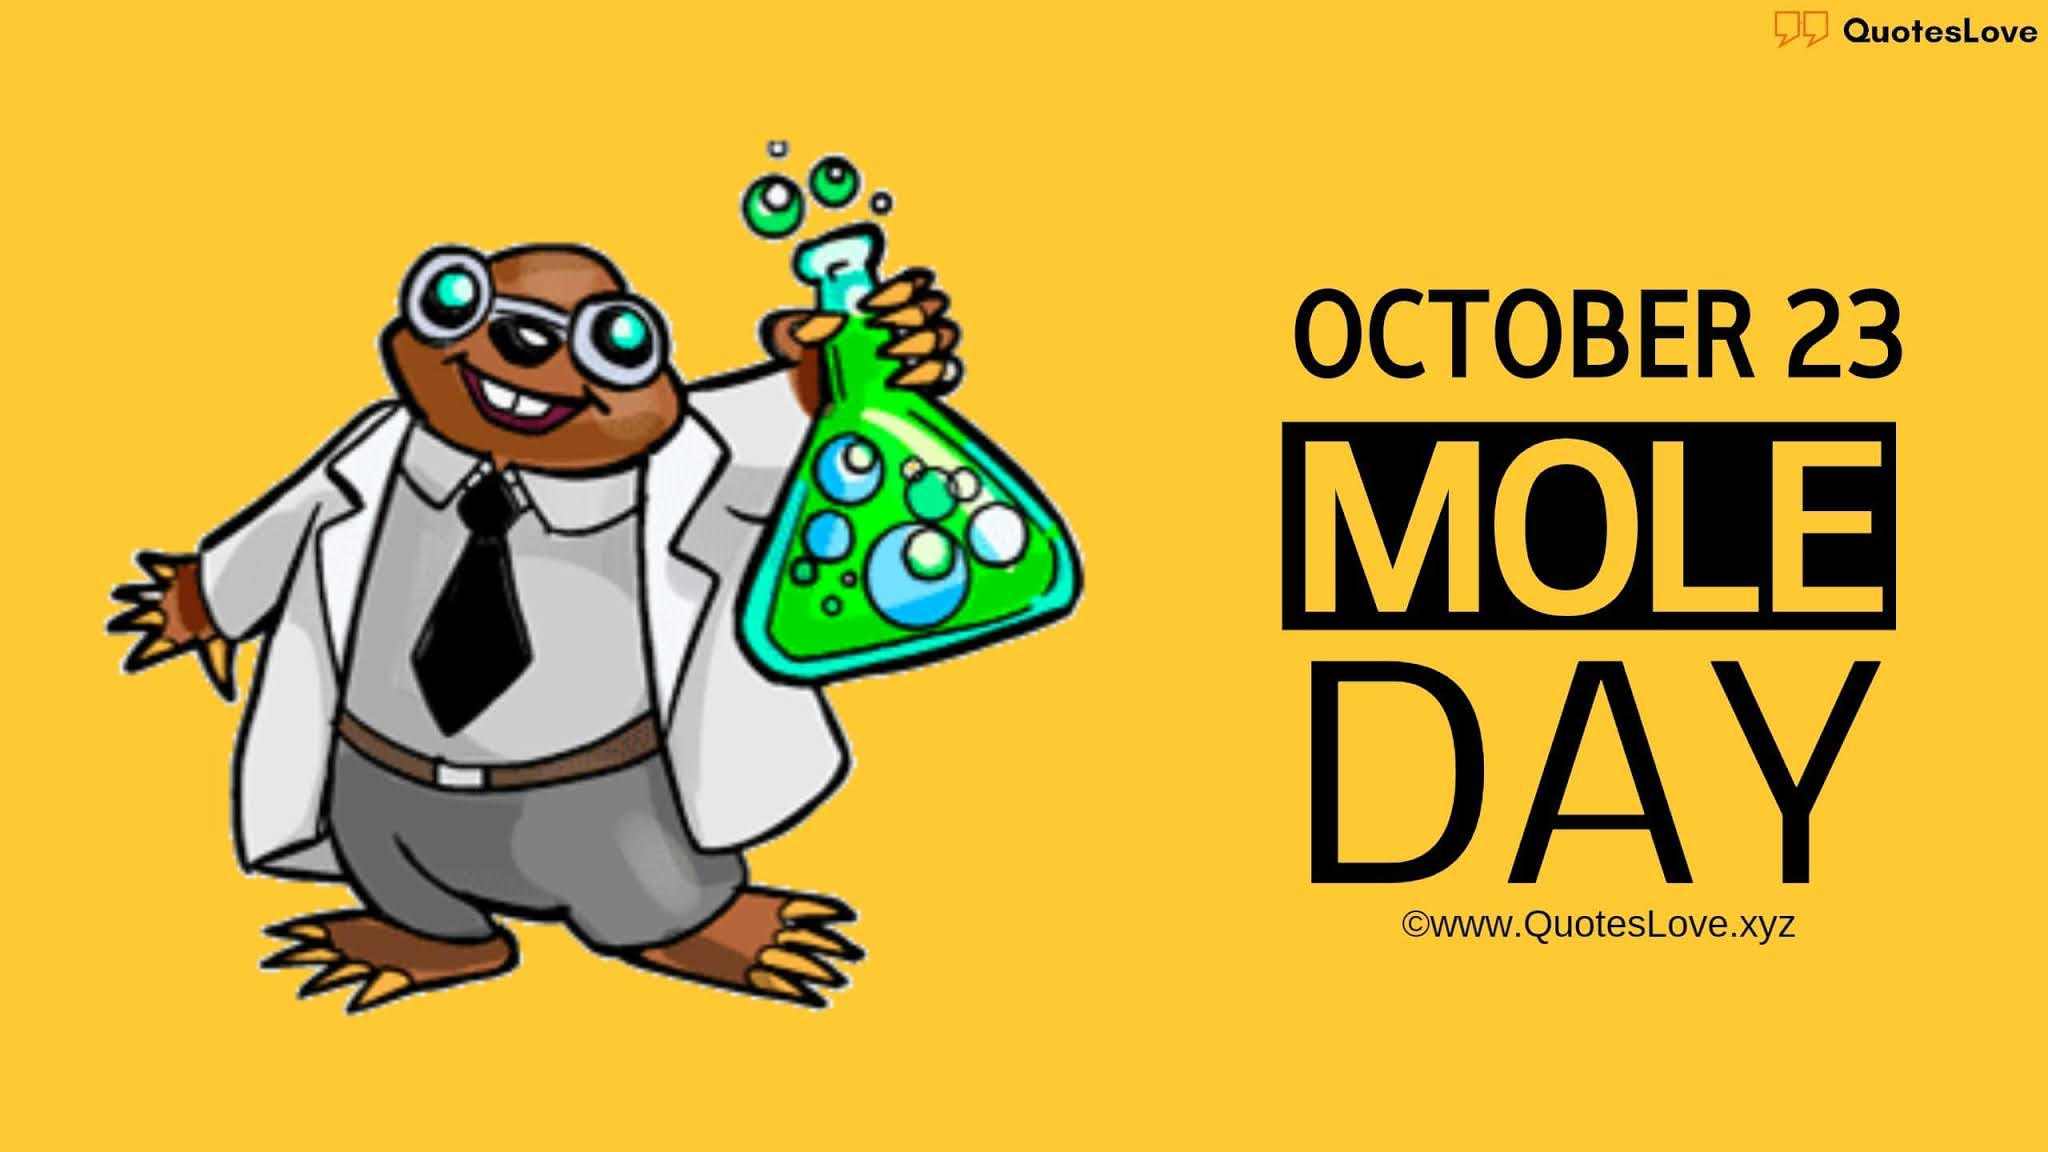 Mole Day Quotes, Sayings, Wishes, Greetings, Messages, Images, Pictures, Poster, Photos